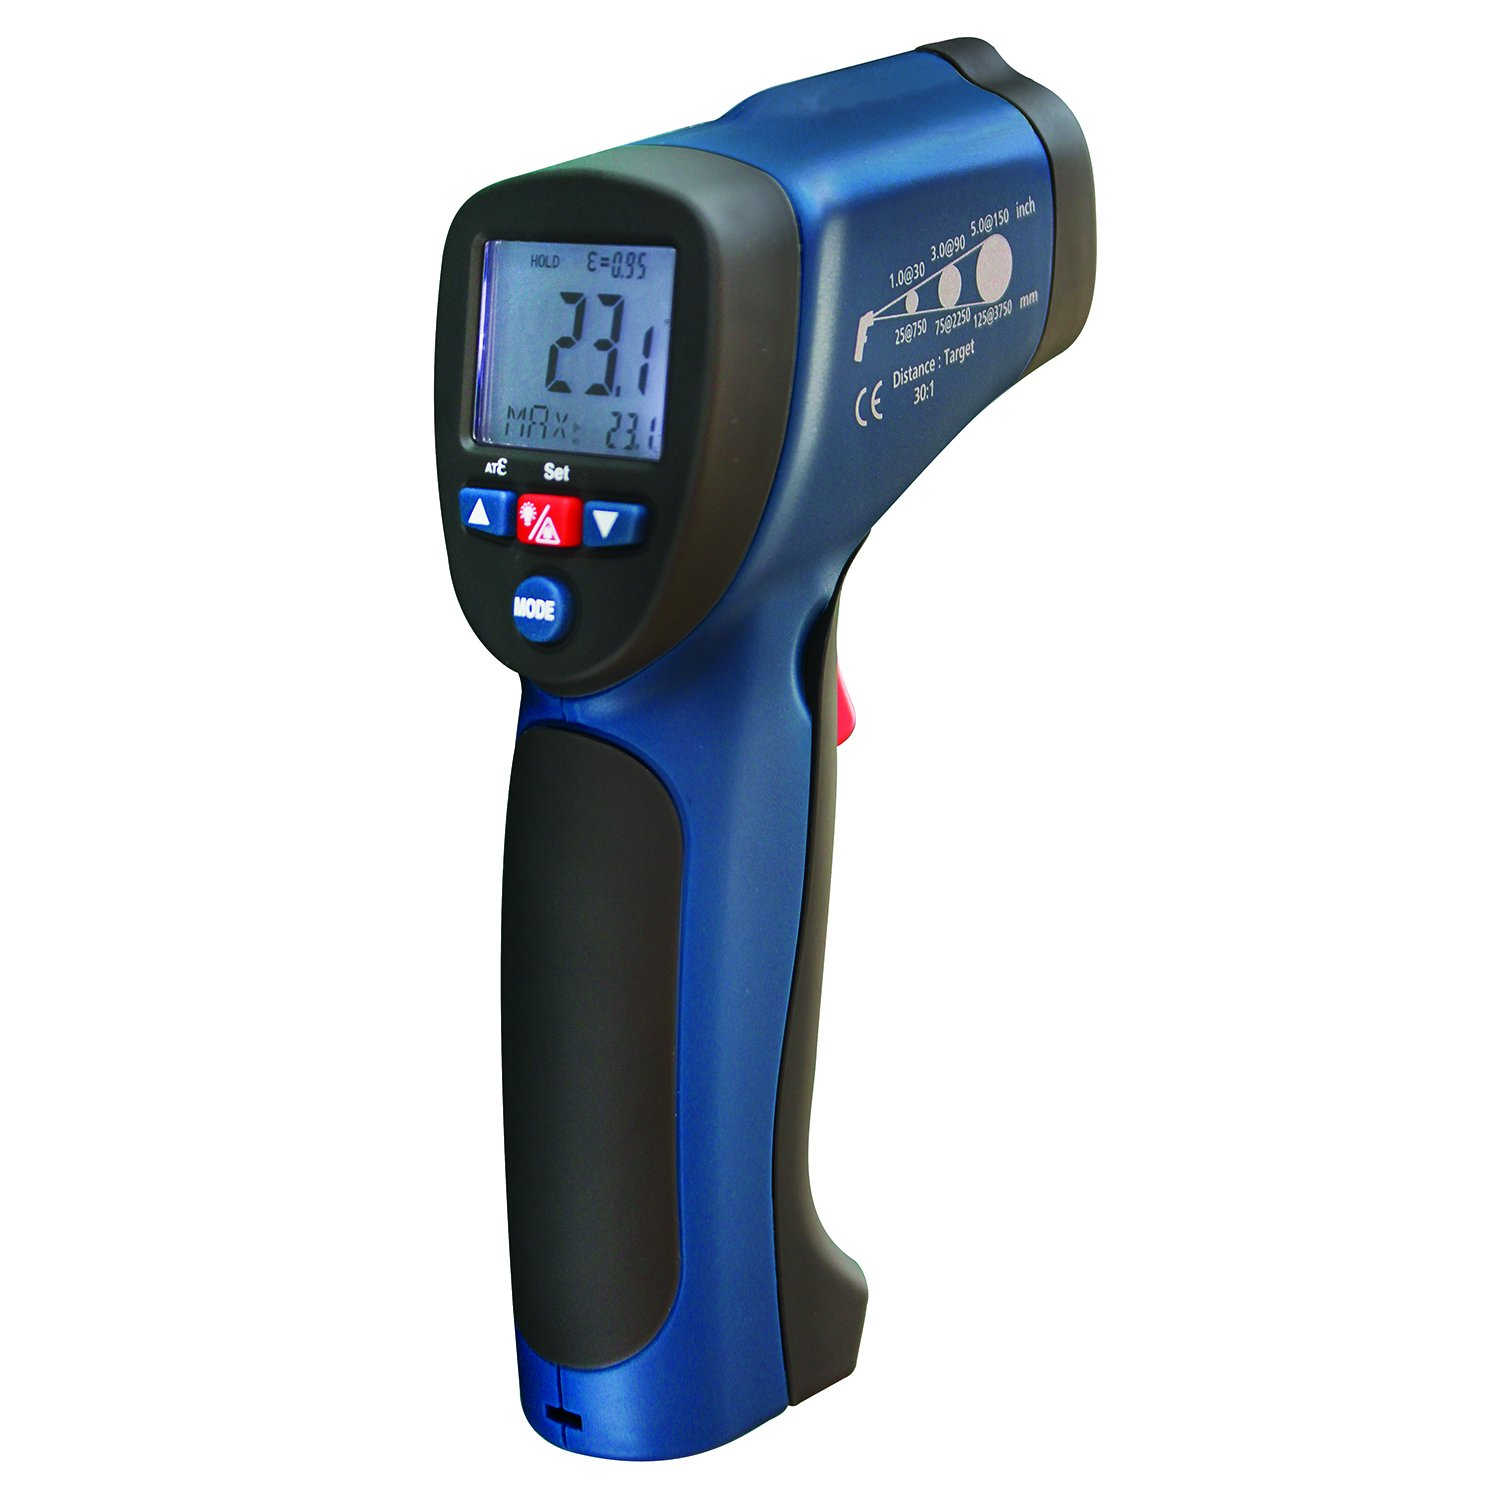 REED Instruments R2005 Infrared Thermometer, 30:1, 1922°F (1050°C), Integrated Type K Thermocouple